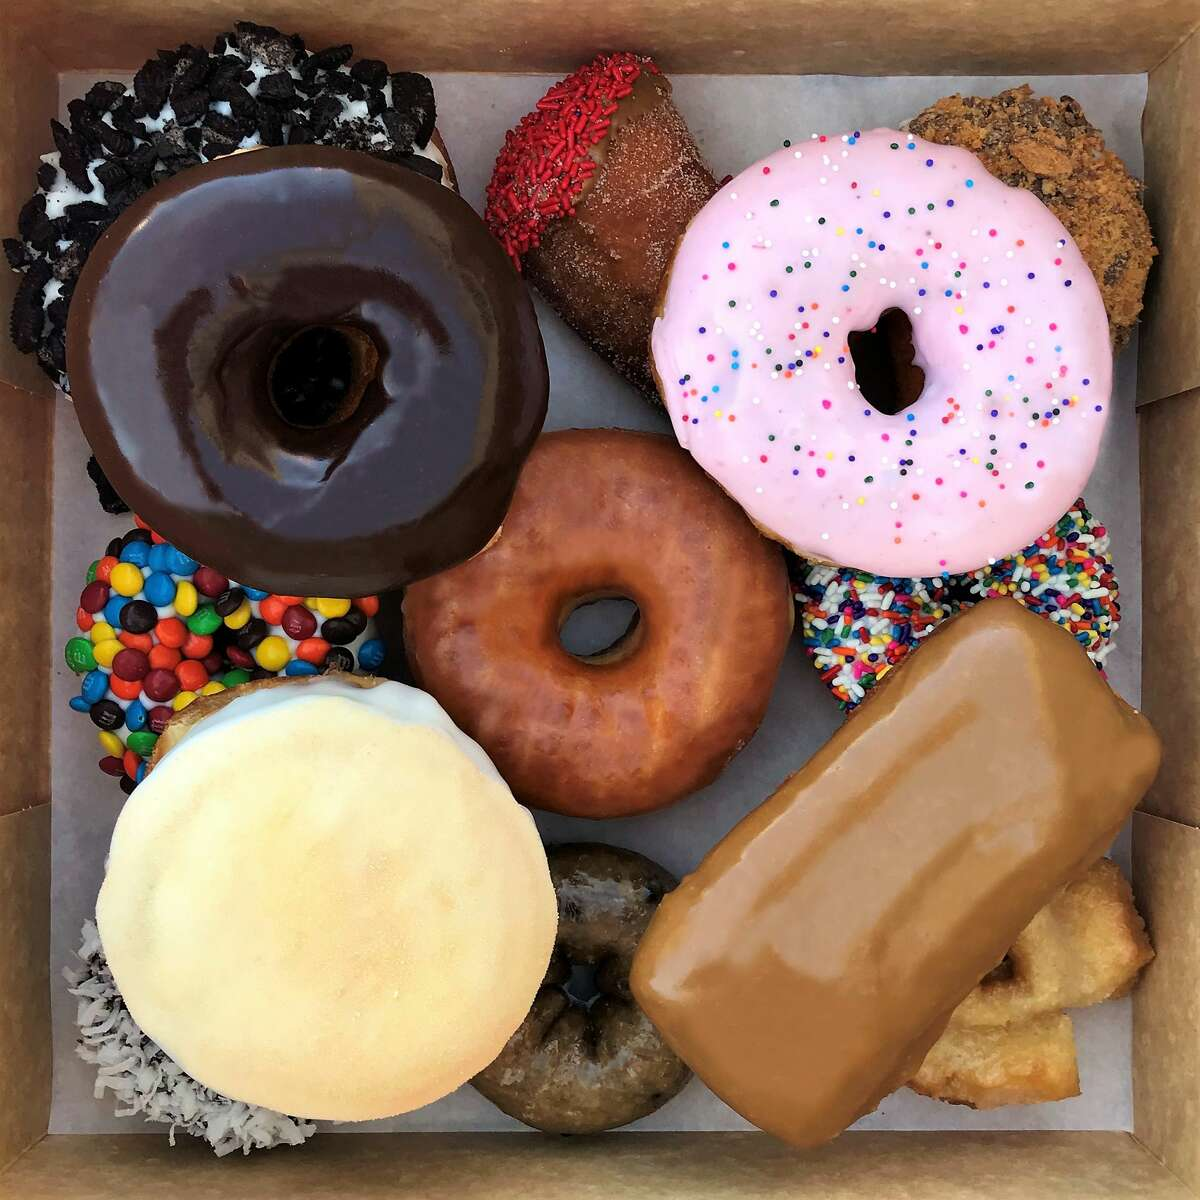 Millions of dollars are being poured into new projects in the lower Westheimer area, including several new restaurants. Popular Portland-based chain Voodoo Doughnut is set to open a second Houston location at 1719 Westheimer. >>> See where to eat and drink now in lower Westheimer ...